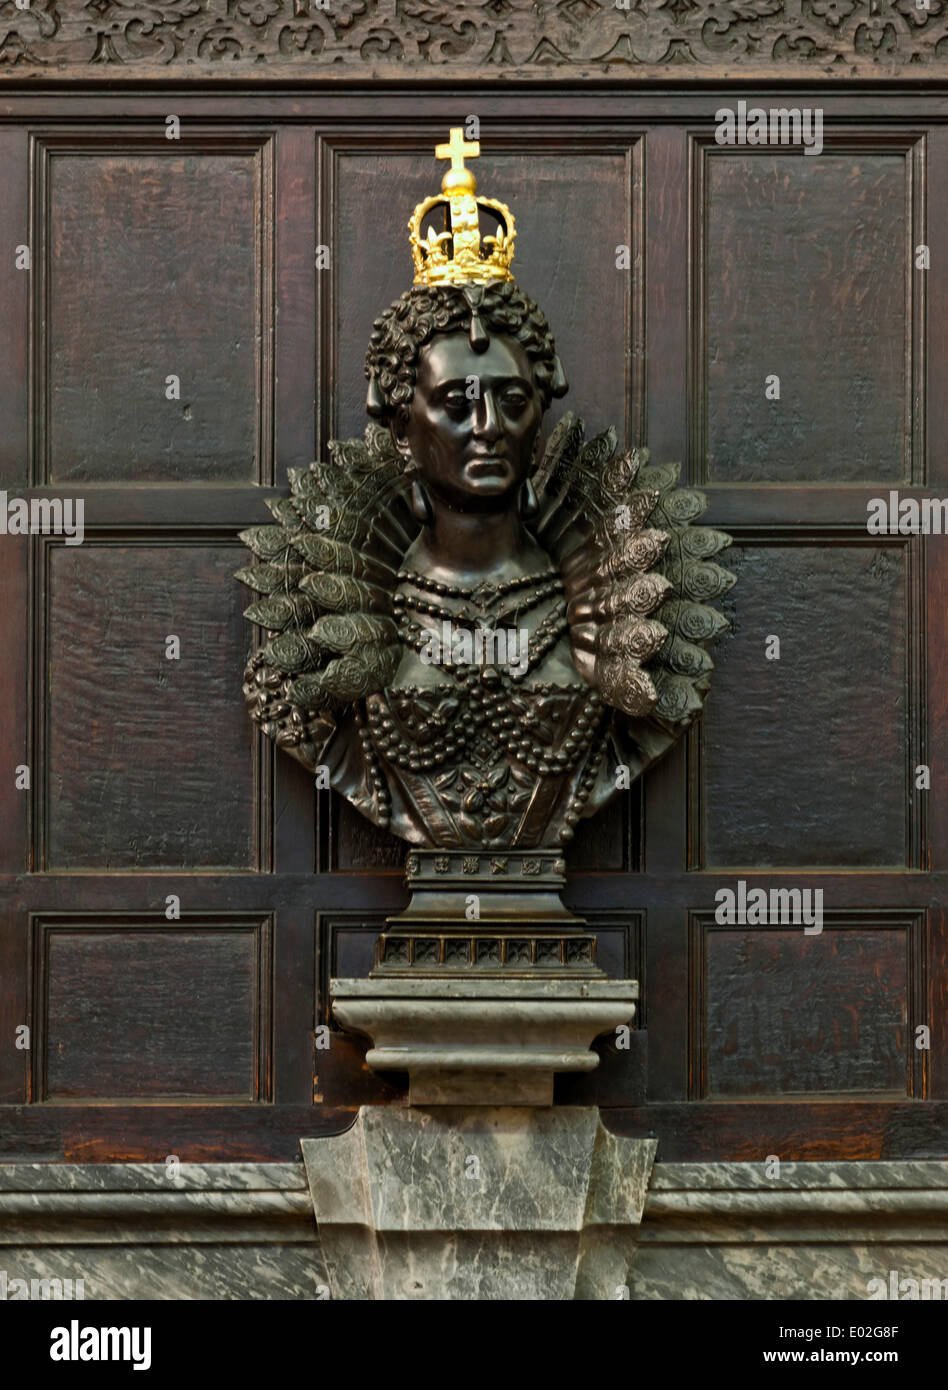 Jesus College Oxford, Oxford, United Kingdom. Architect: N/A, 1571. Bust of Queen Elizabeth I in the Dining Hall. - Stock Image